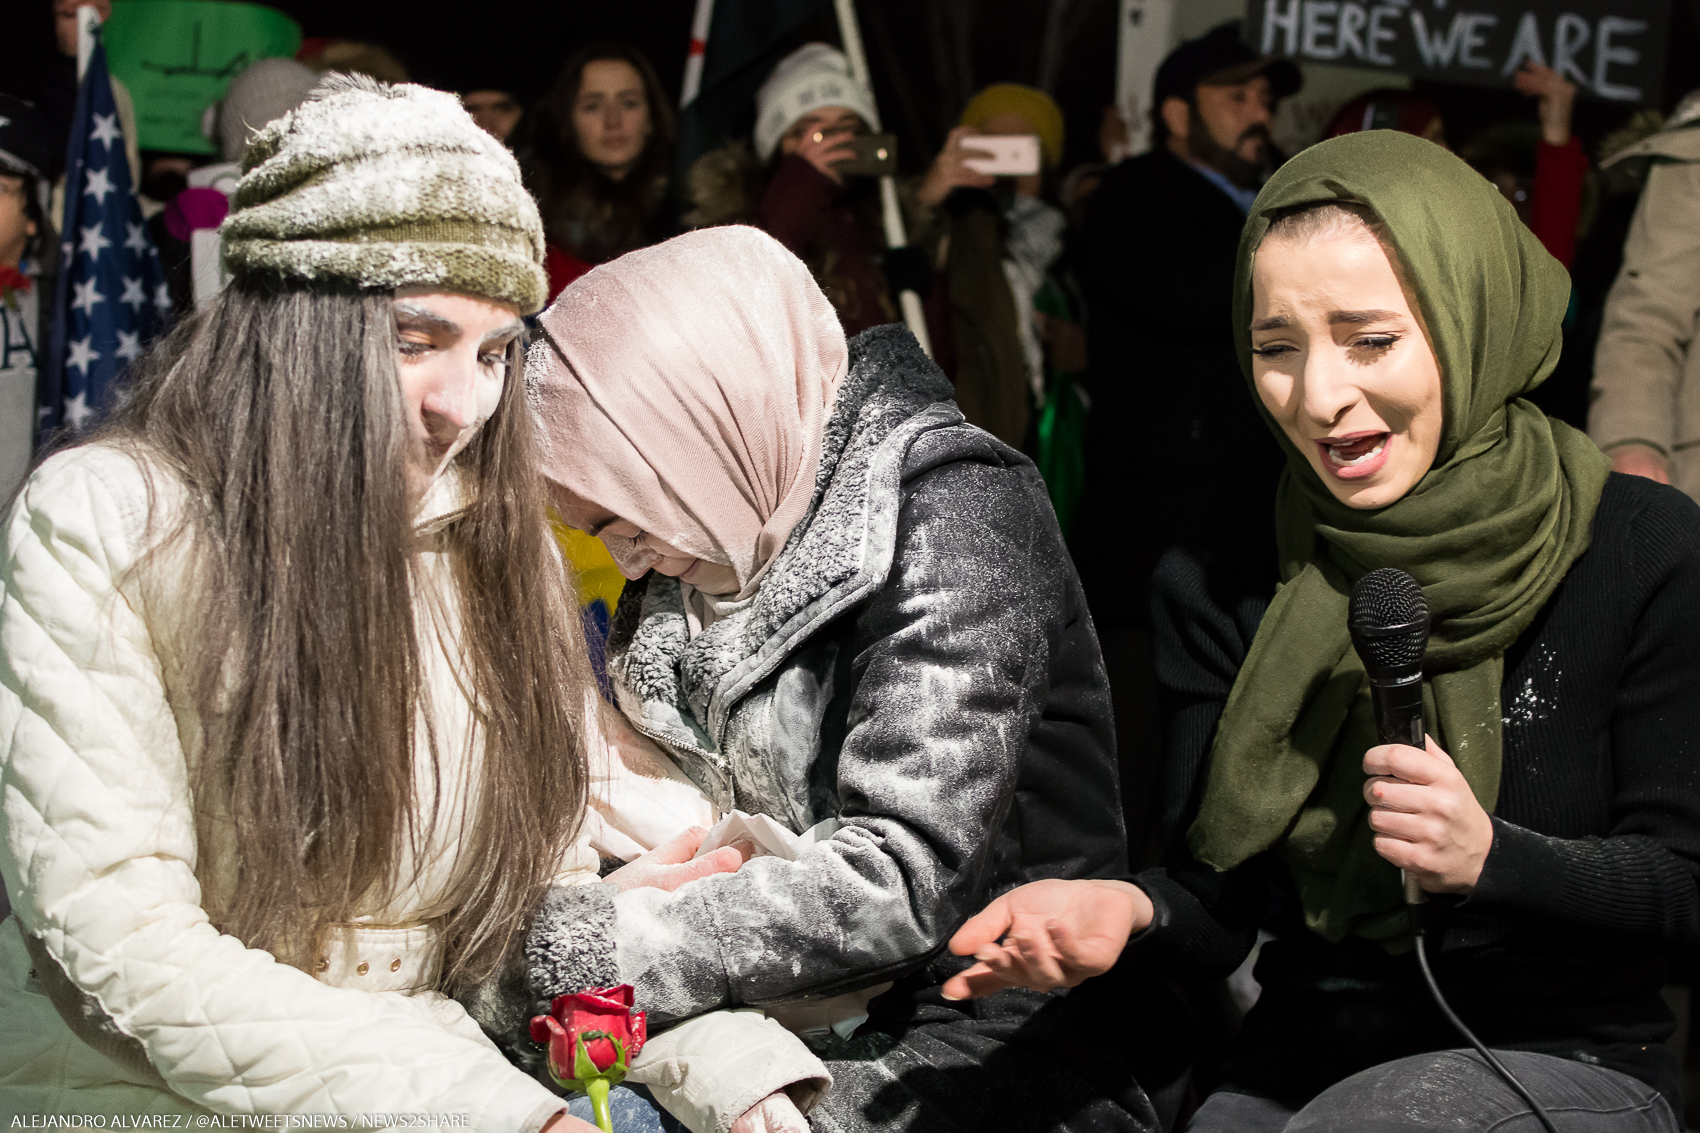 Meriem Abou-Ghazaleh recreates what life is like for Aleppo civilians during a vigil outside the White House on Dec. 16.